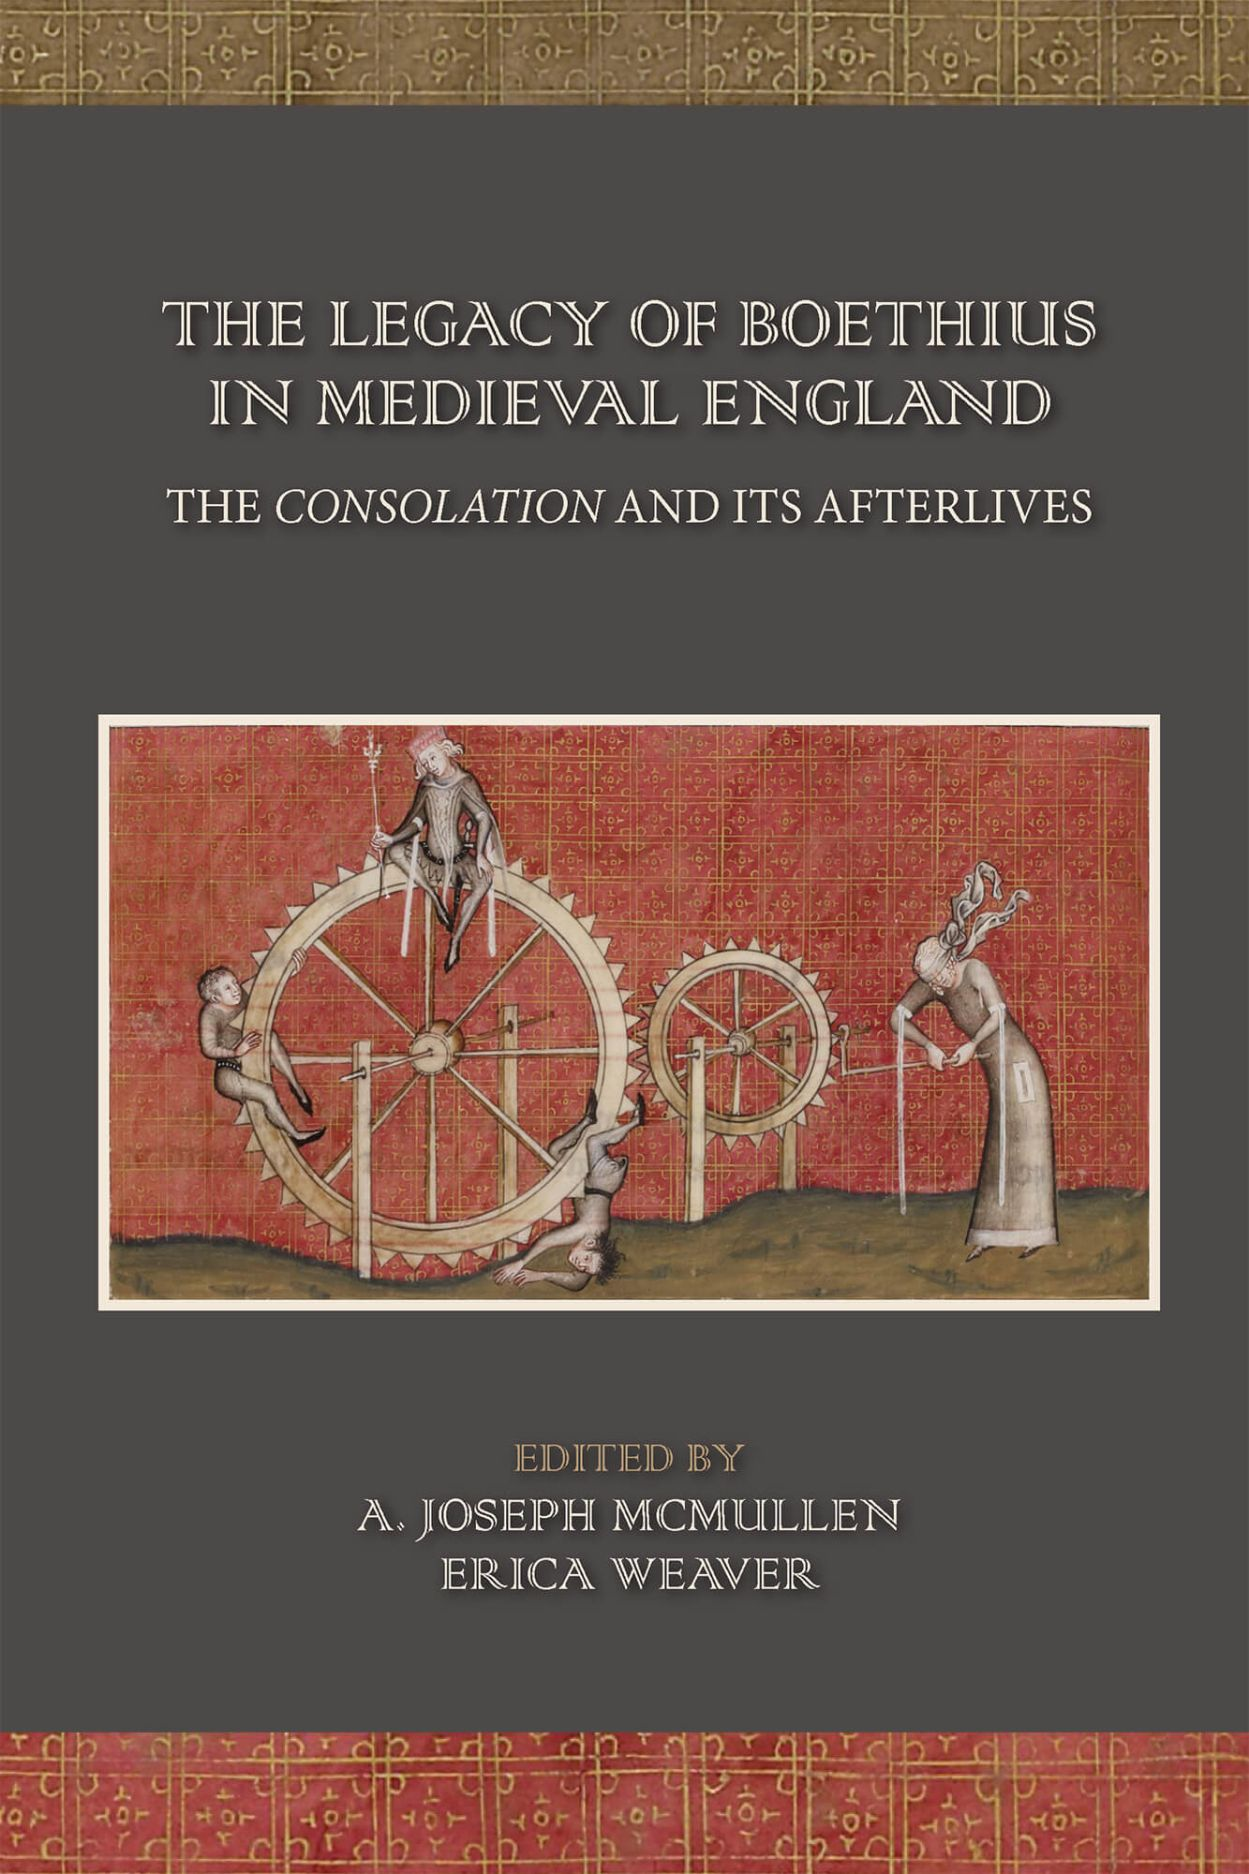 The Legacy of Boethius in Medieval England: The Consolation and